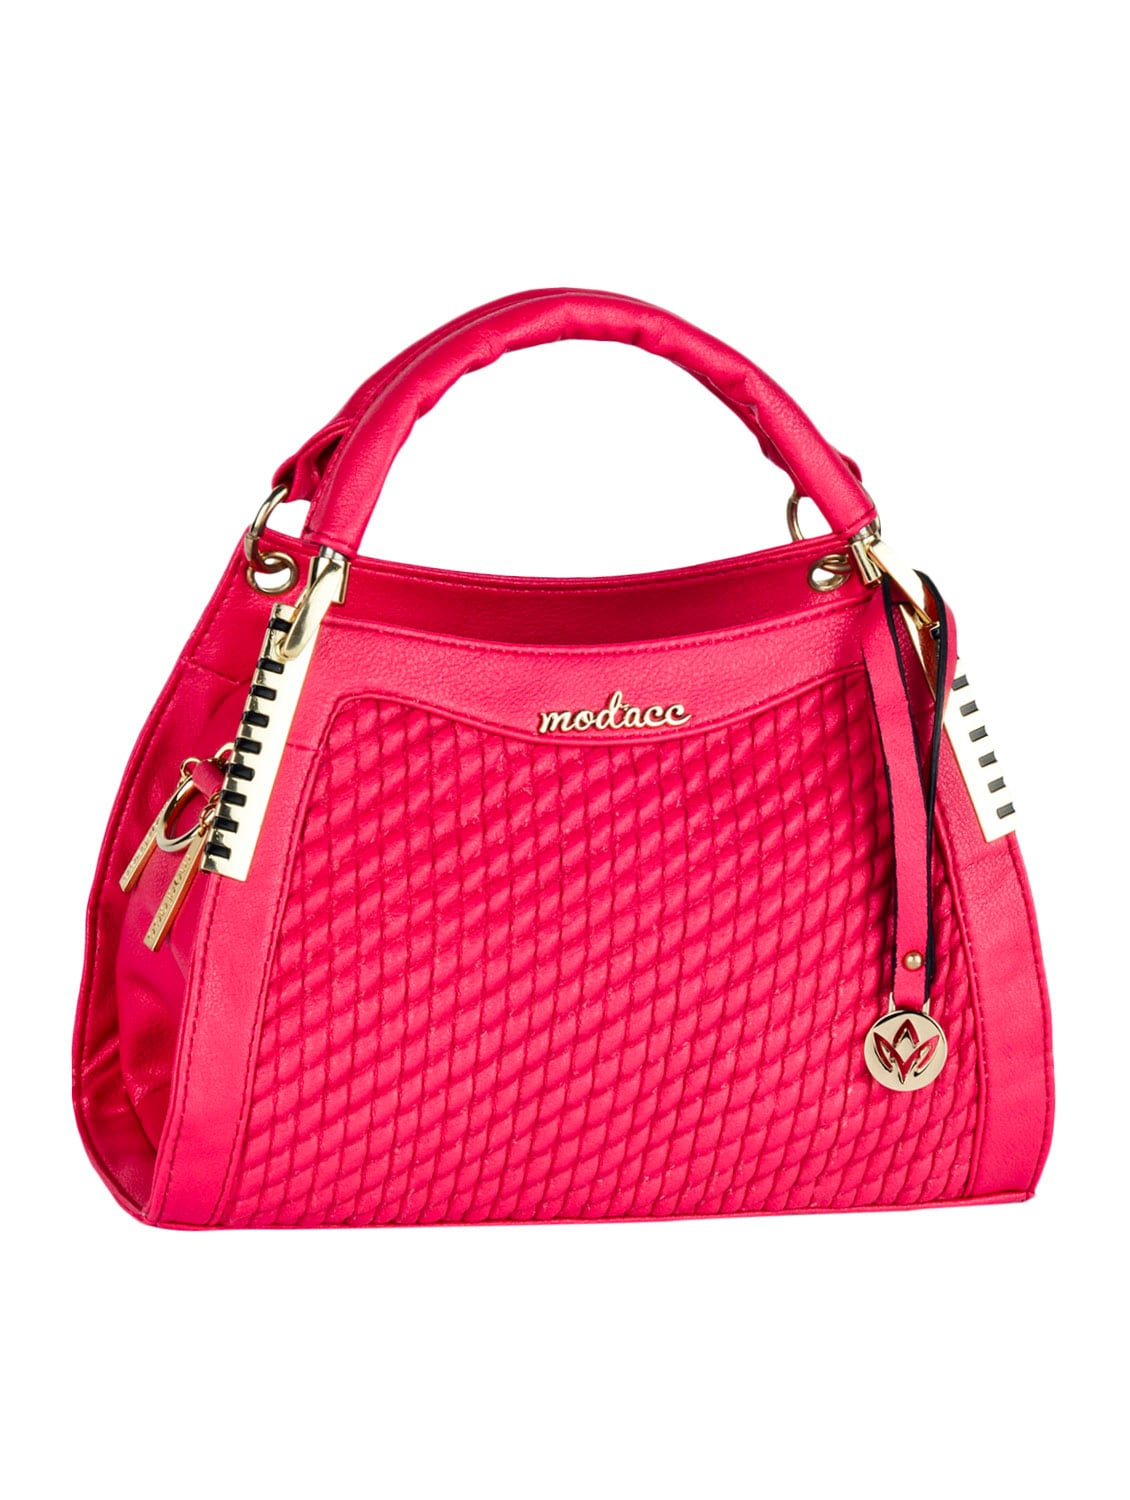 Textured Front Pink Leatherette Handbag - Mod'acc